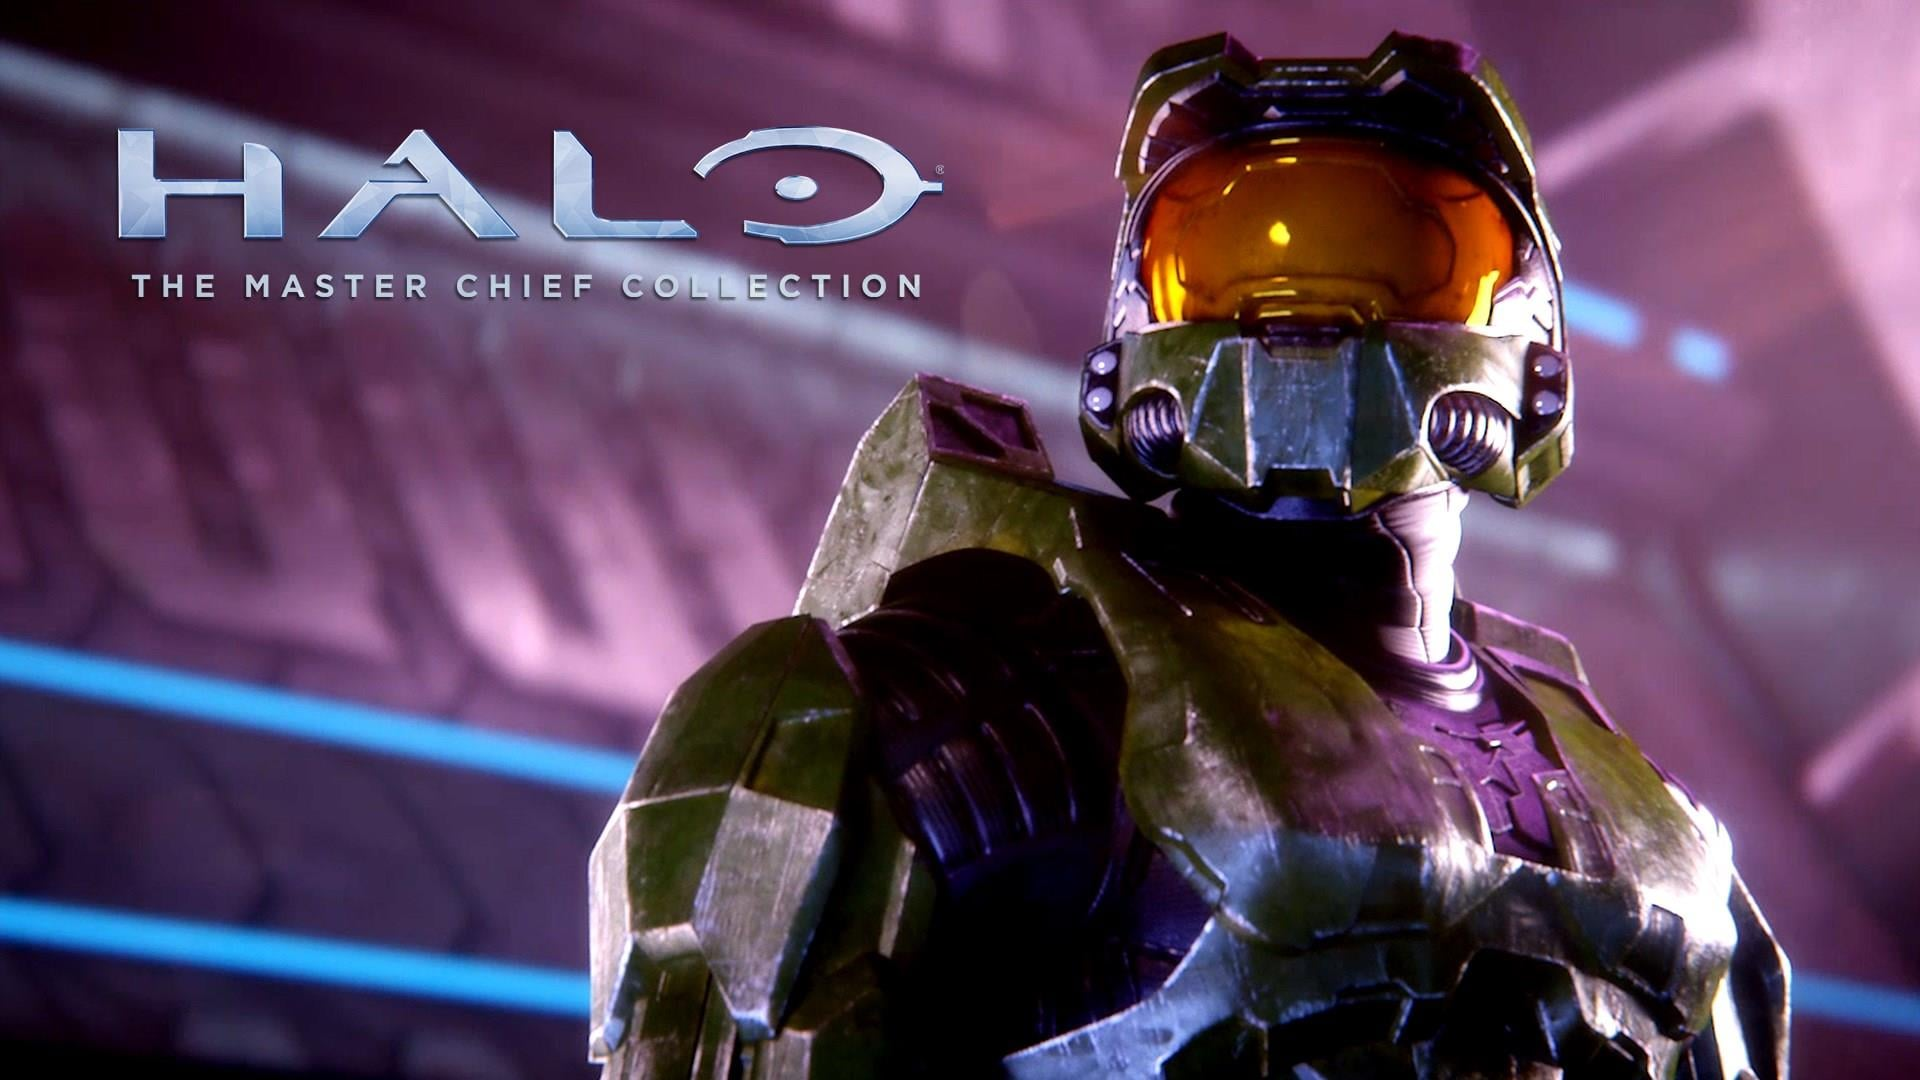 Halo: The Master Chief Collection ~ Trailer